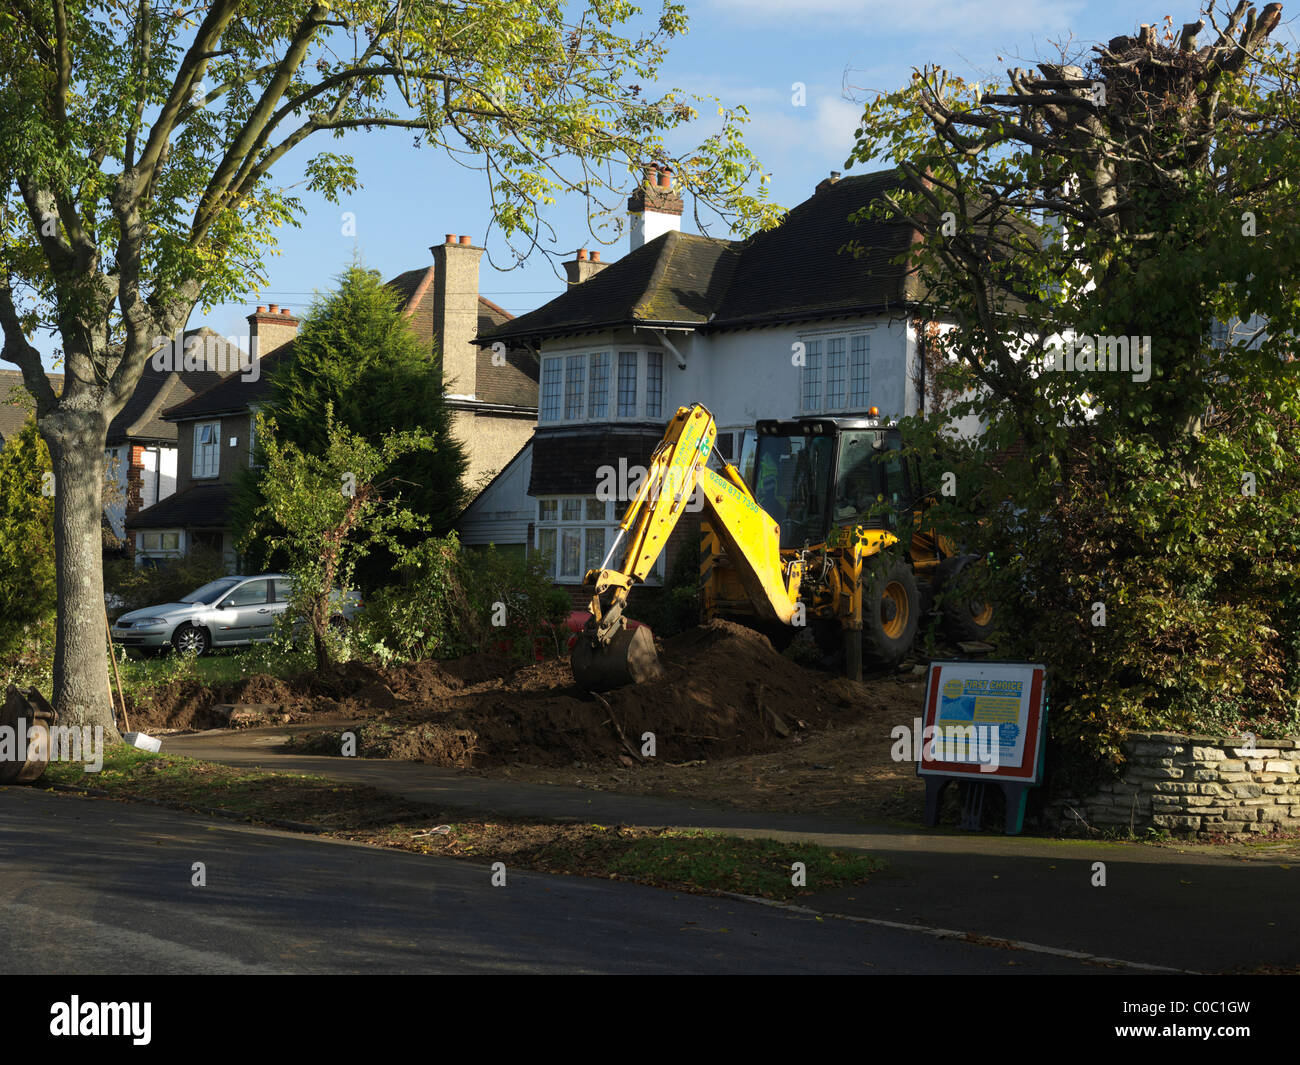 JCB Digger Working In Front Garden By House England - Stock Image